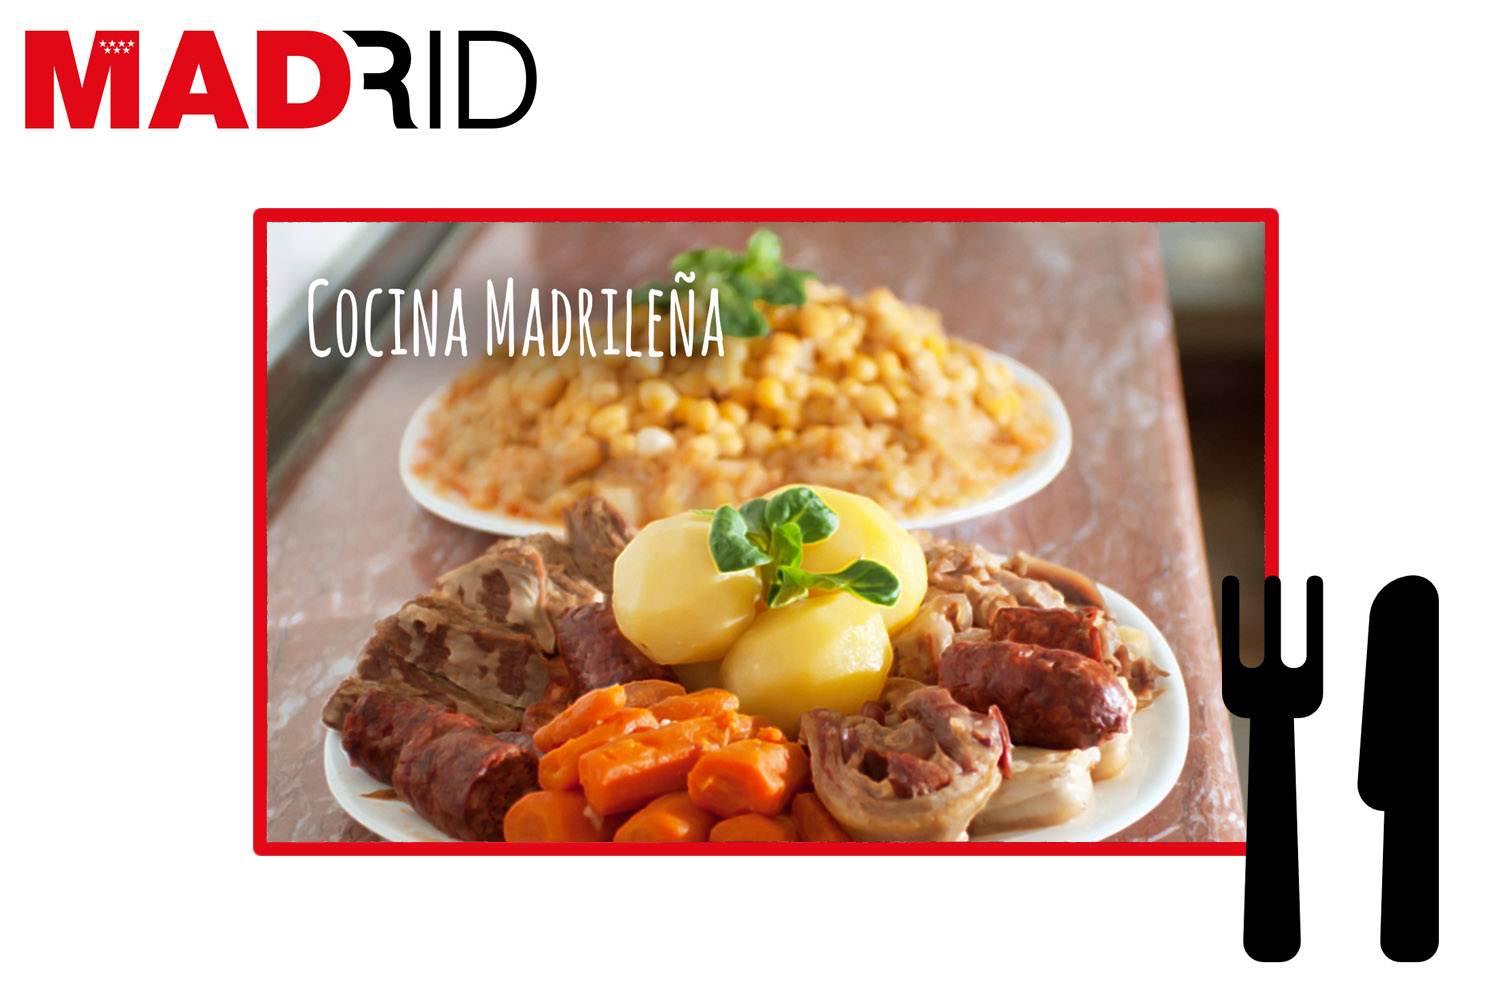 Typical dishes from Madrid